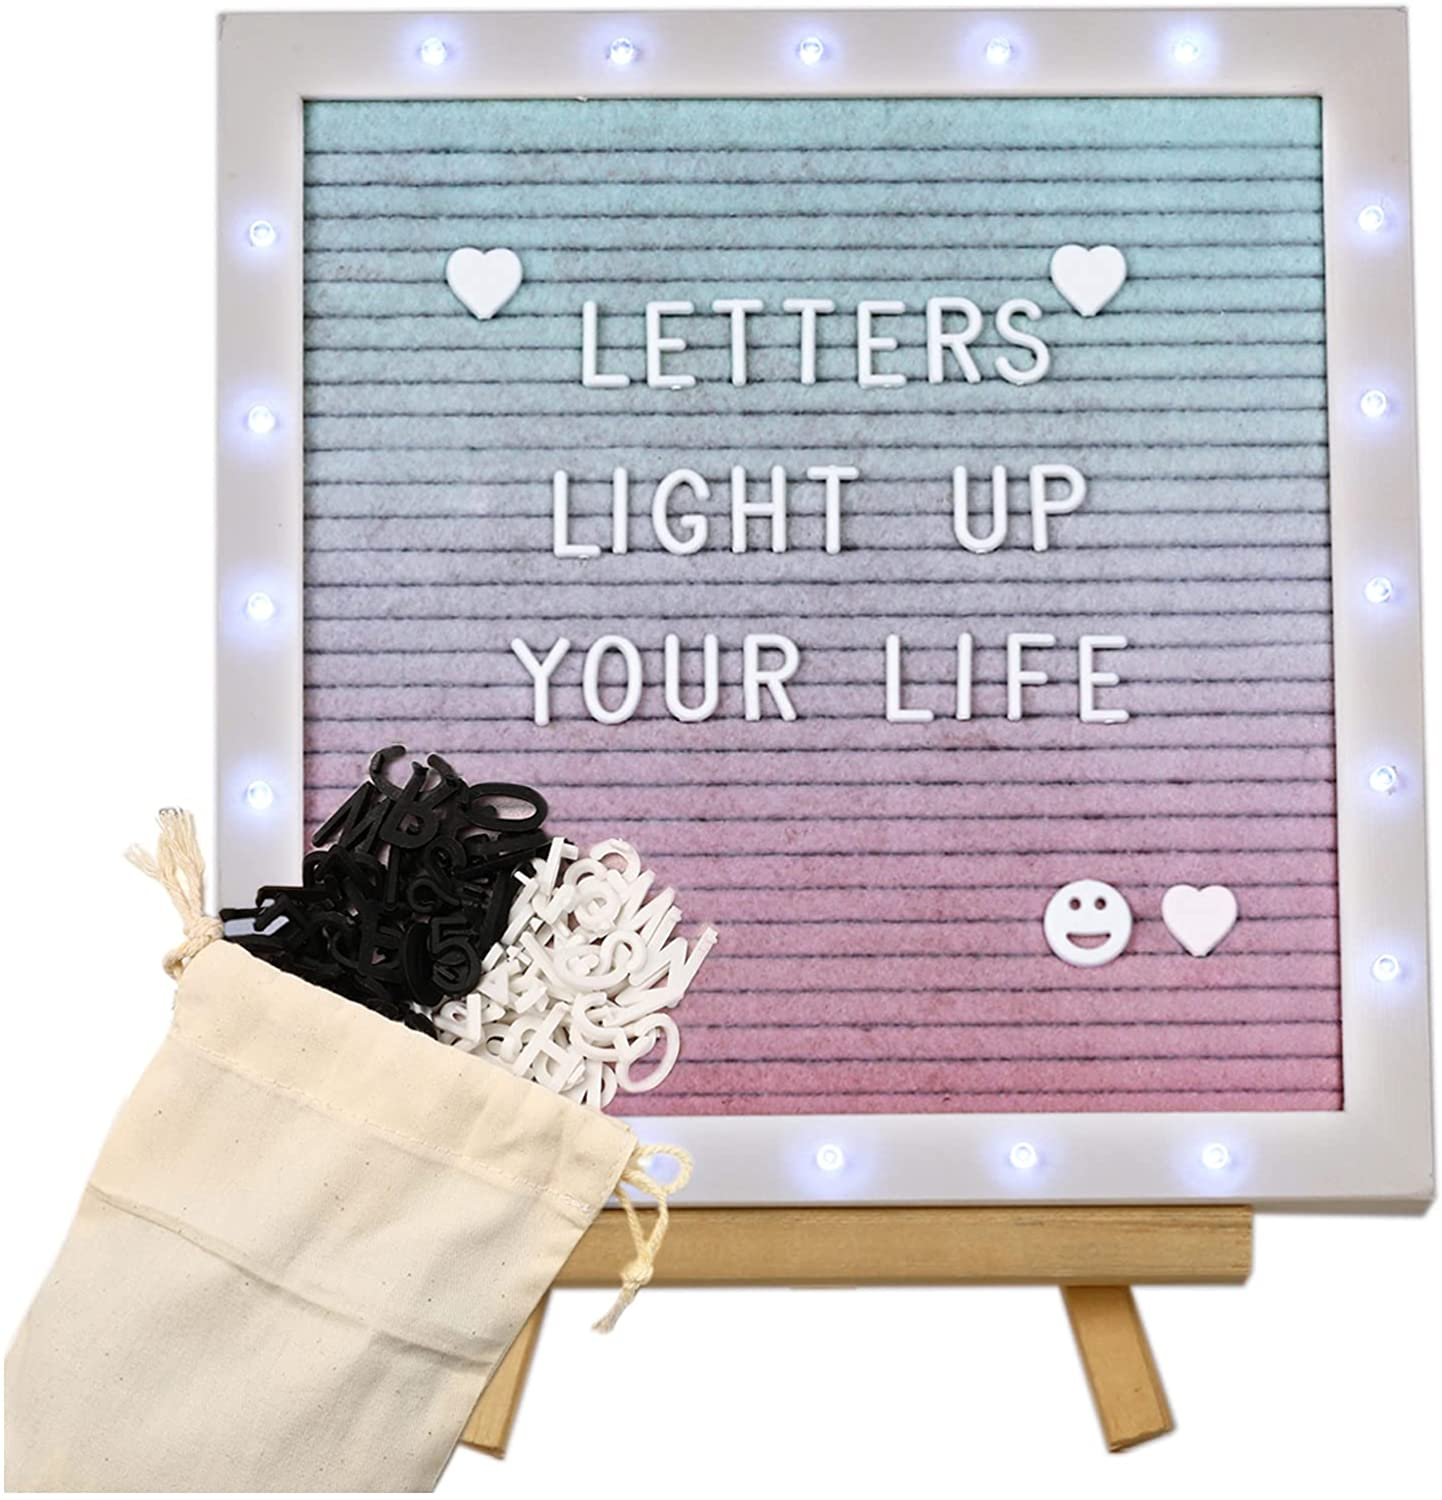 Gradient Felt San Francisco Mall Letter Board Raleigh Mall with 10 × Lights- Inch LED